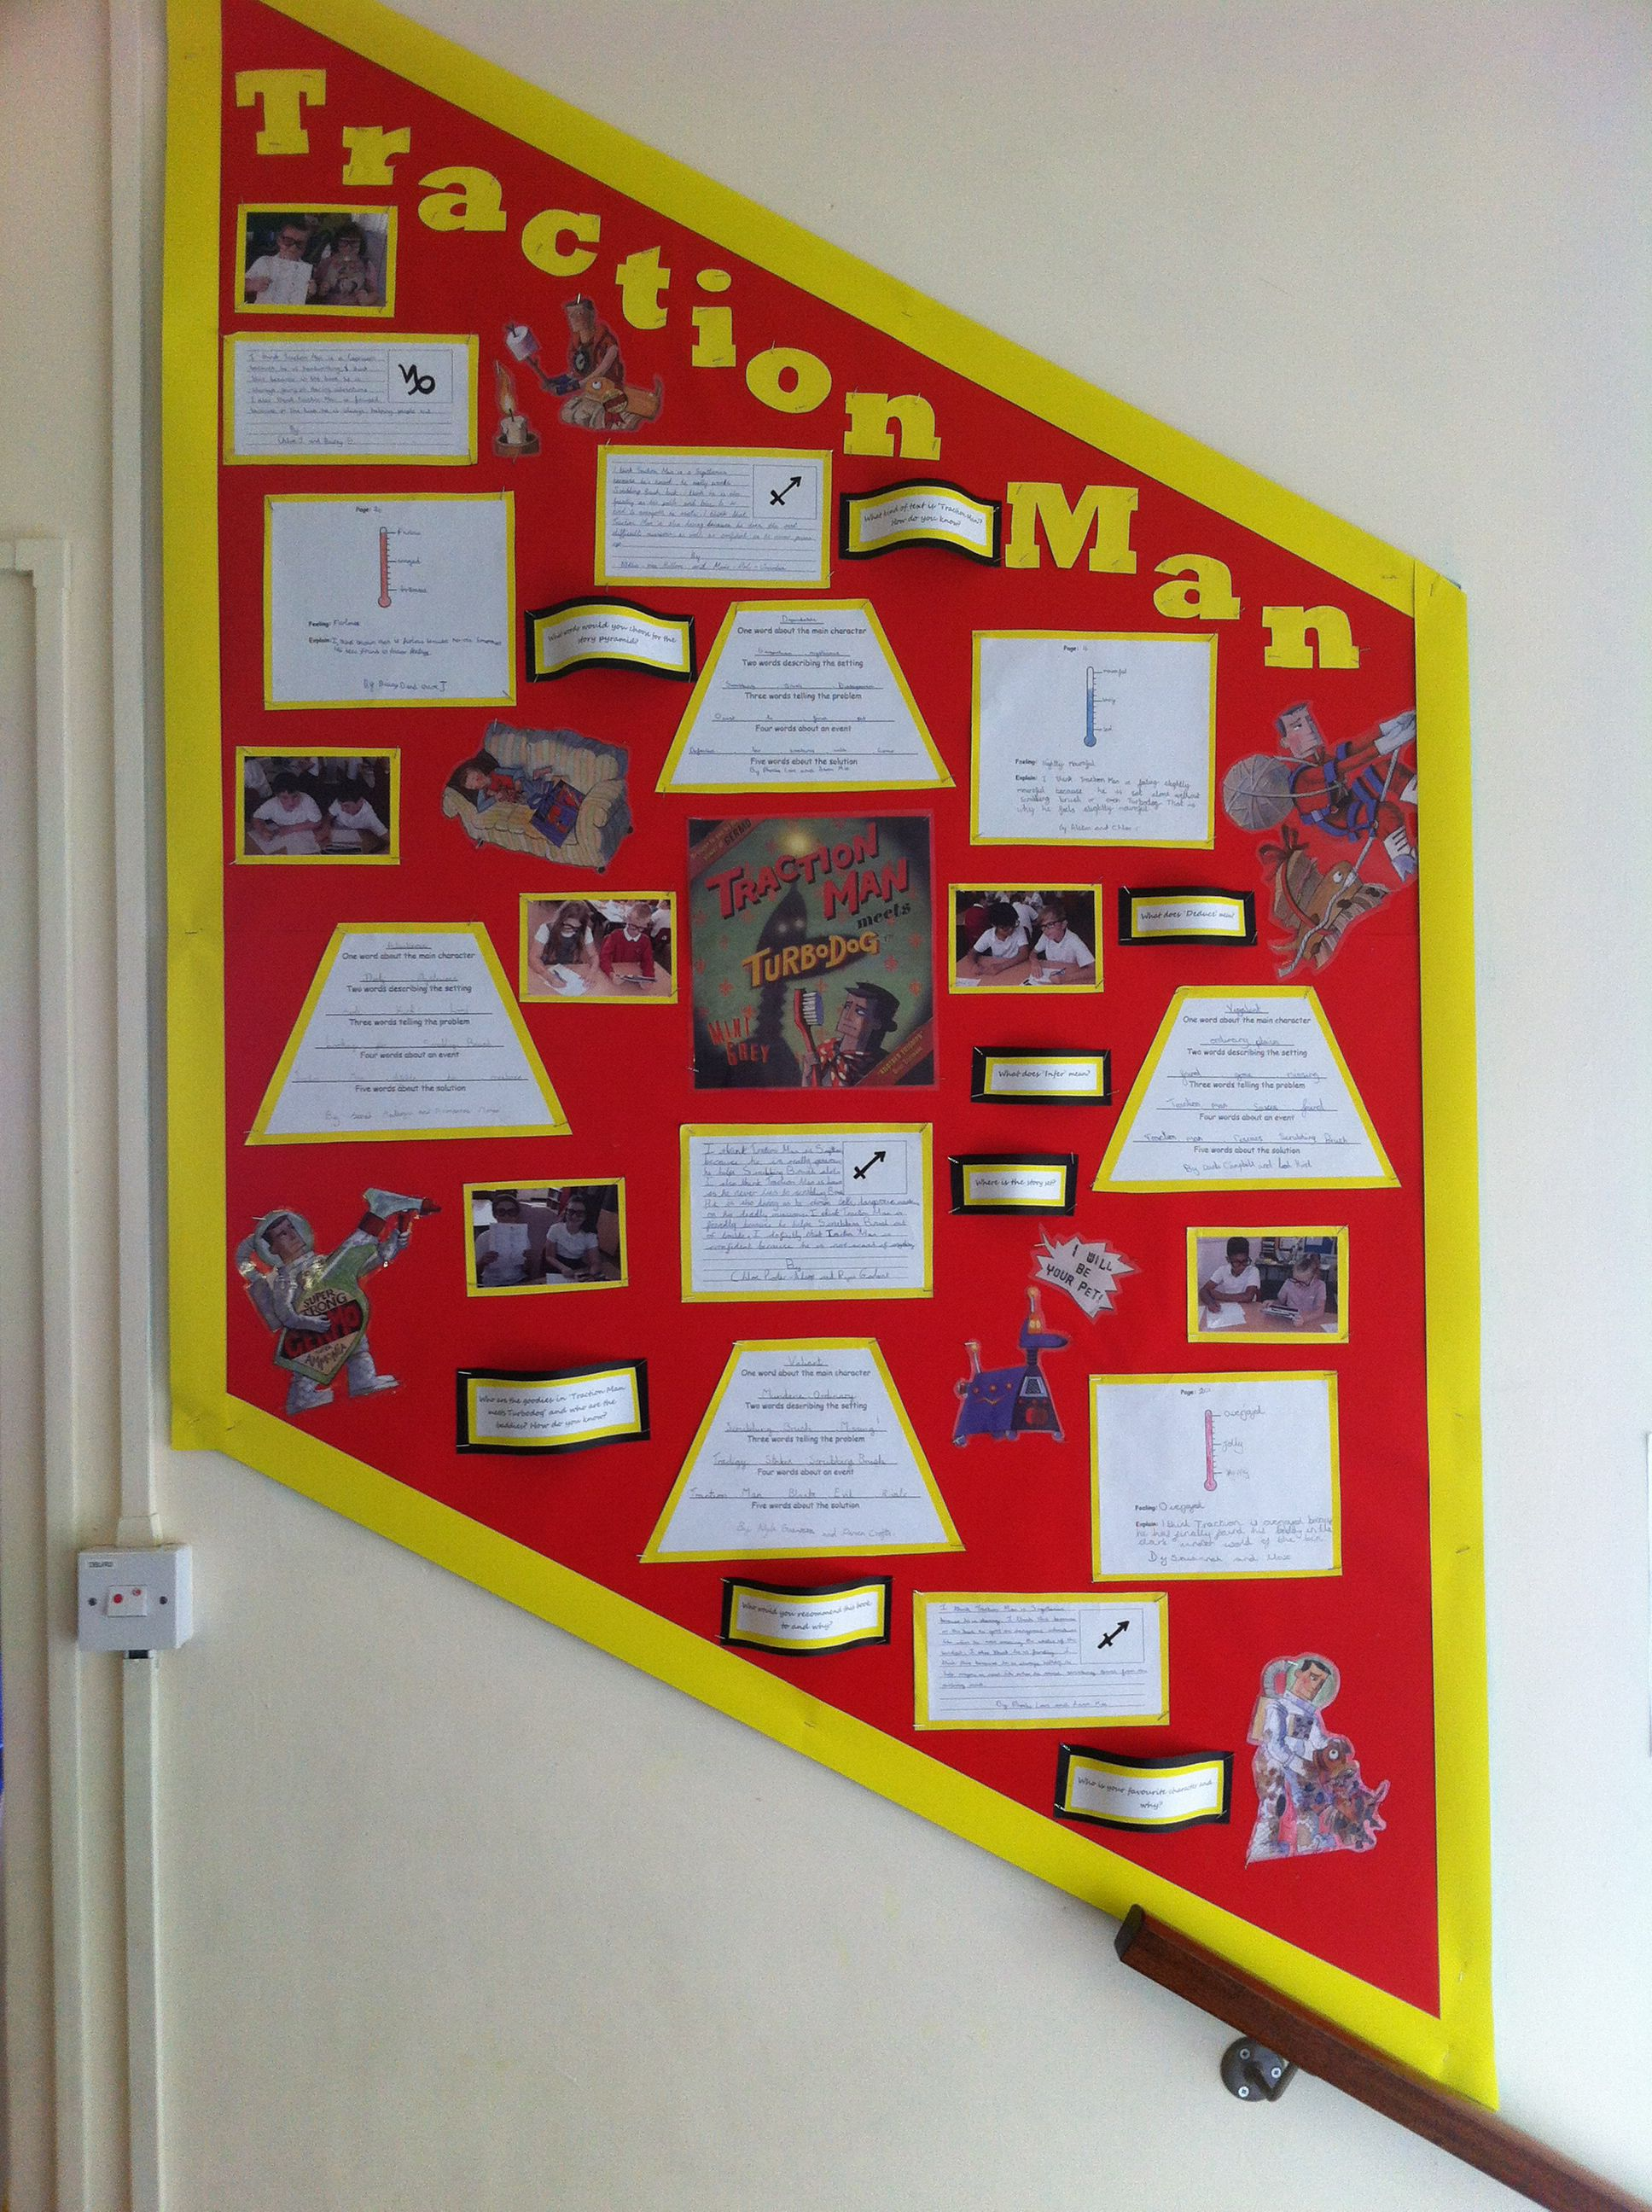 Traction Man Reading Display Year 4 5 Primary School